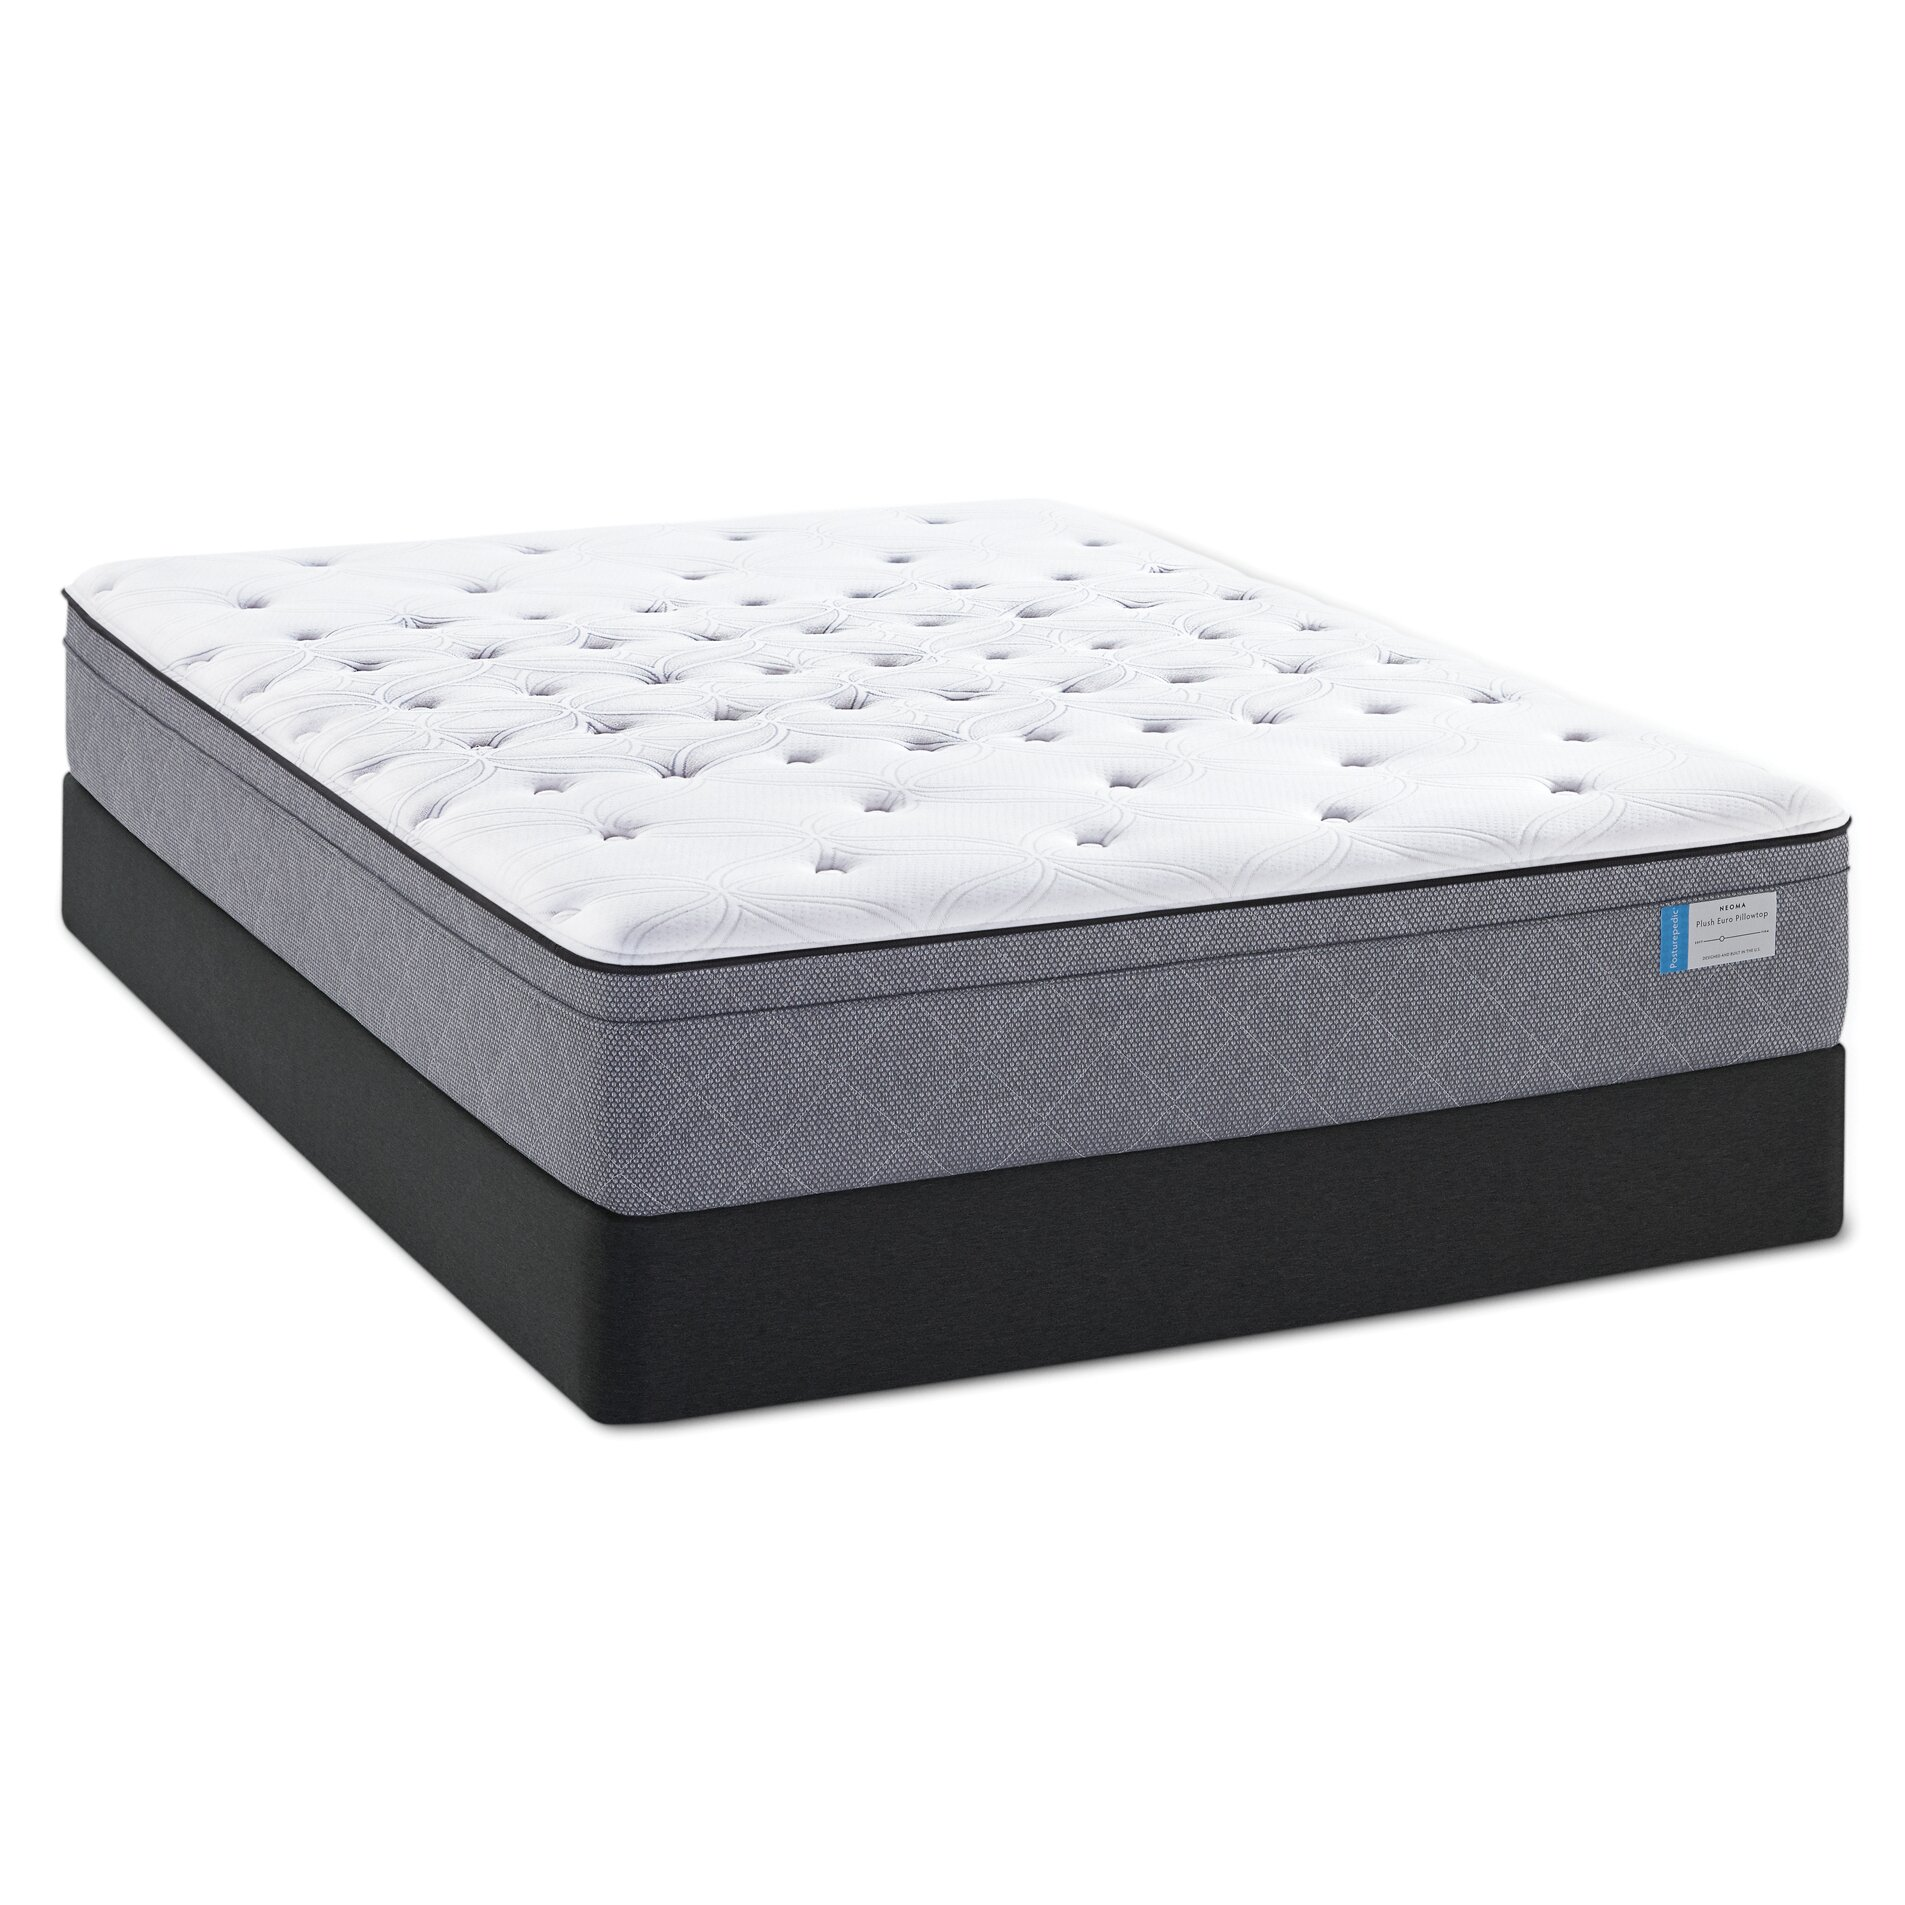 Sealy Posturepedic Firm Mattress Bing images